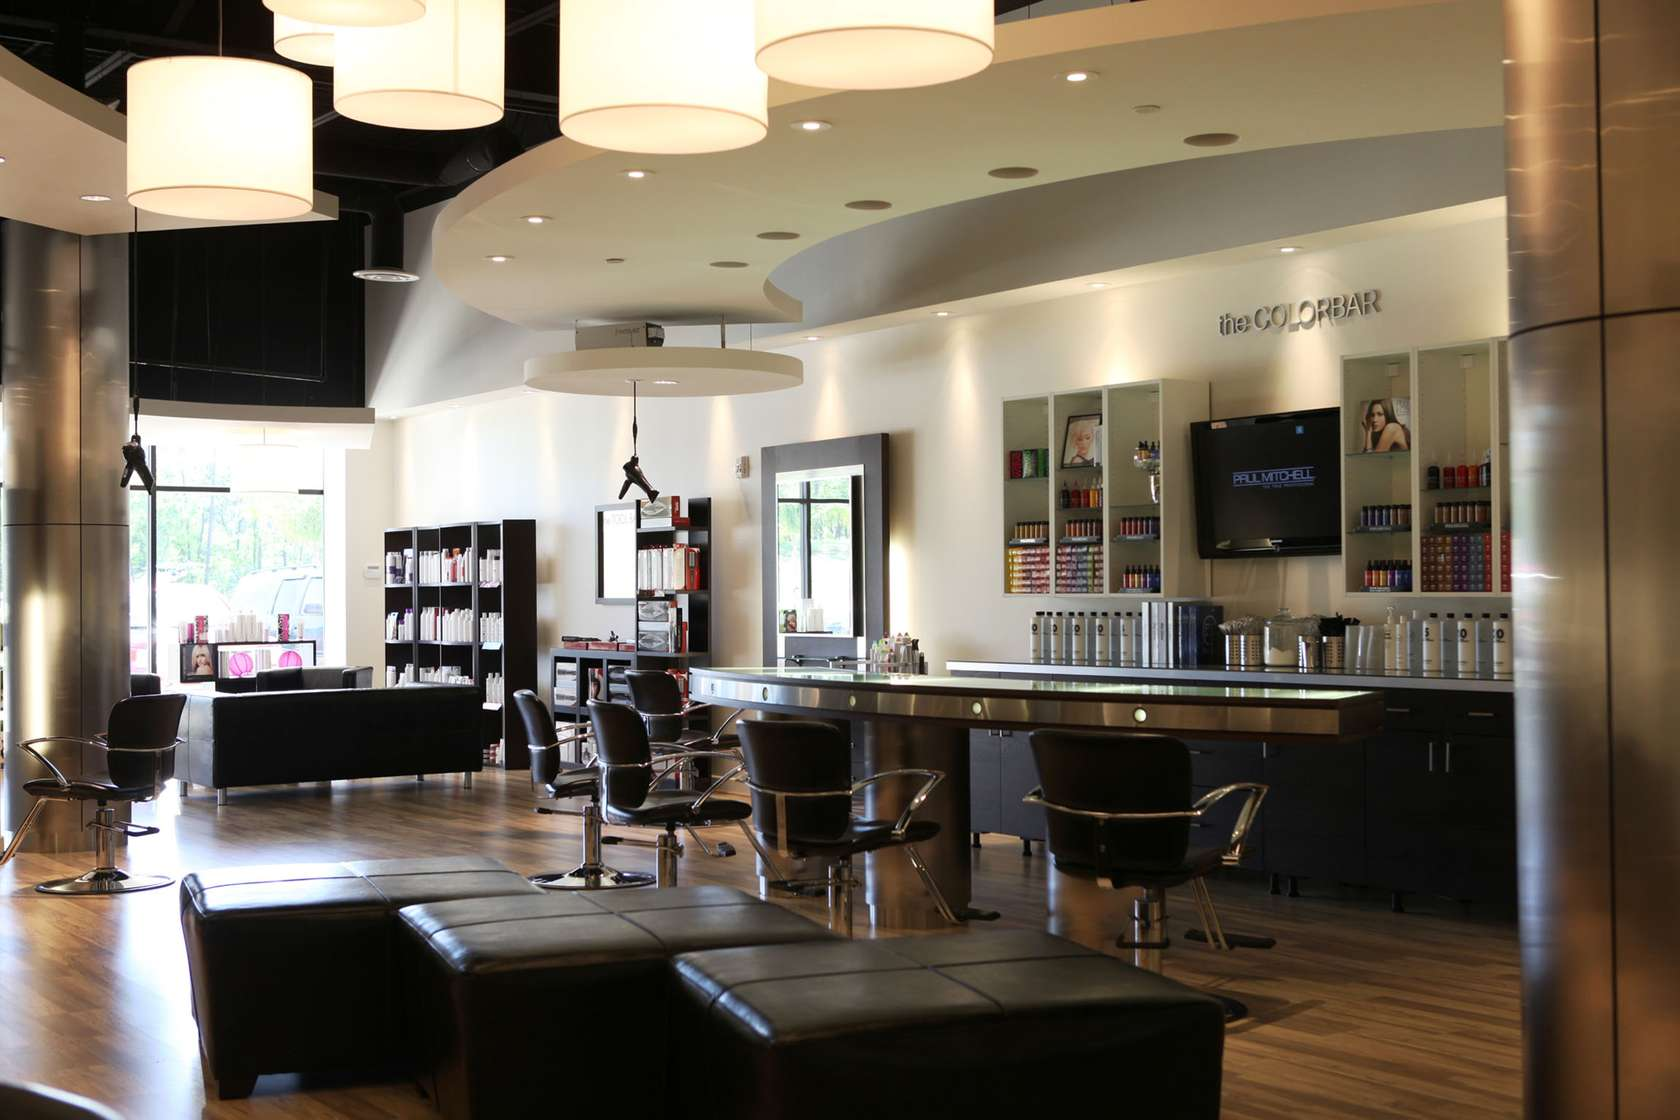 Beyond fringe architizer for A salon paul mitchell